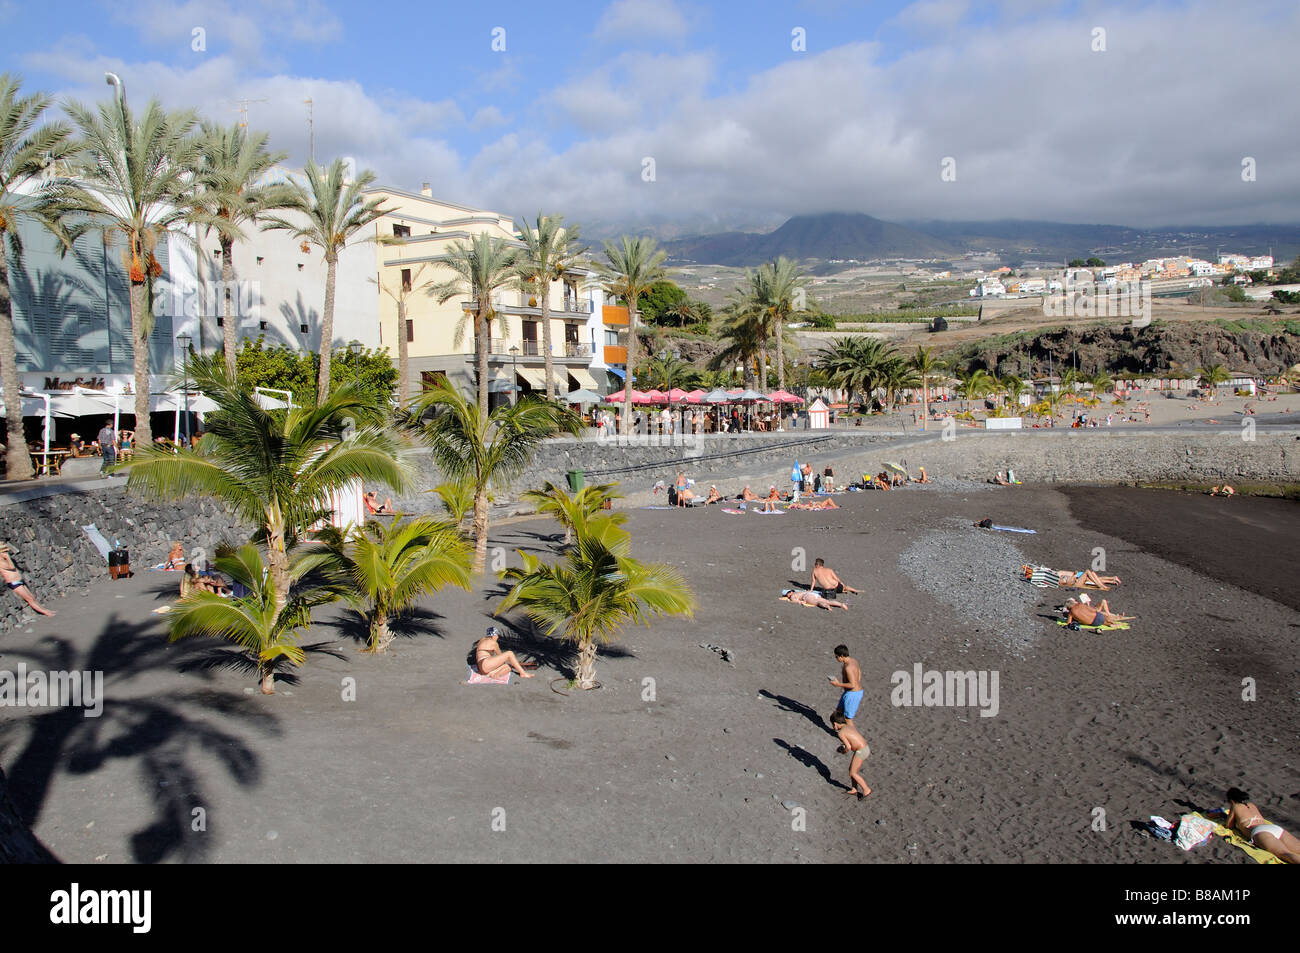 San Juan a seaside resort and fishing port in south Tenerife Canary Islands - Stock Image